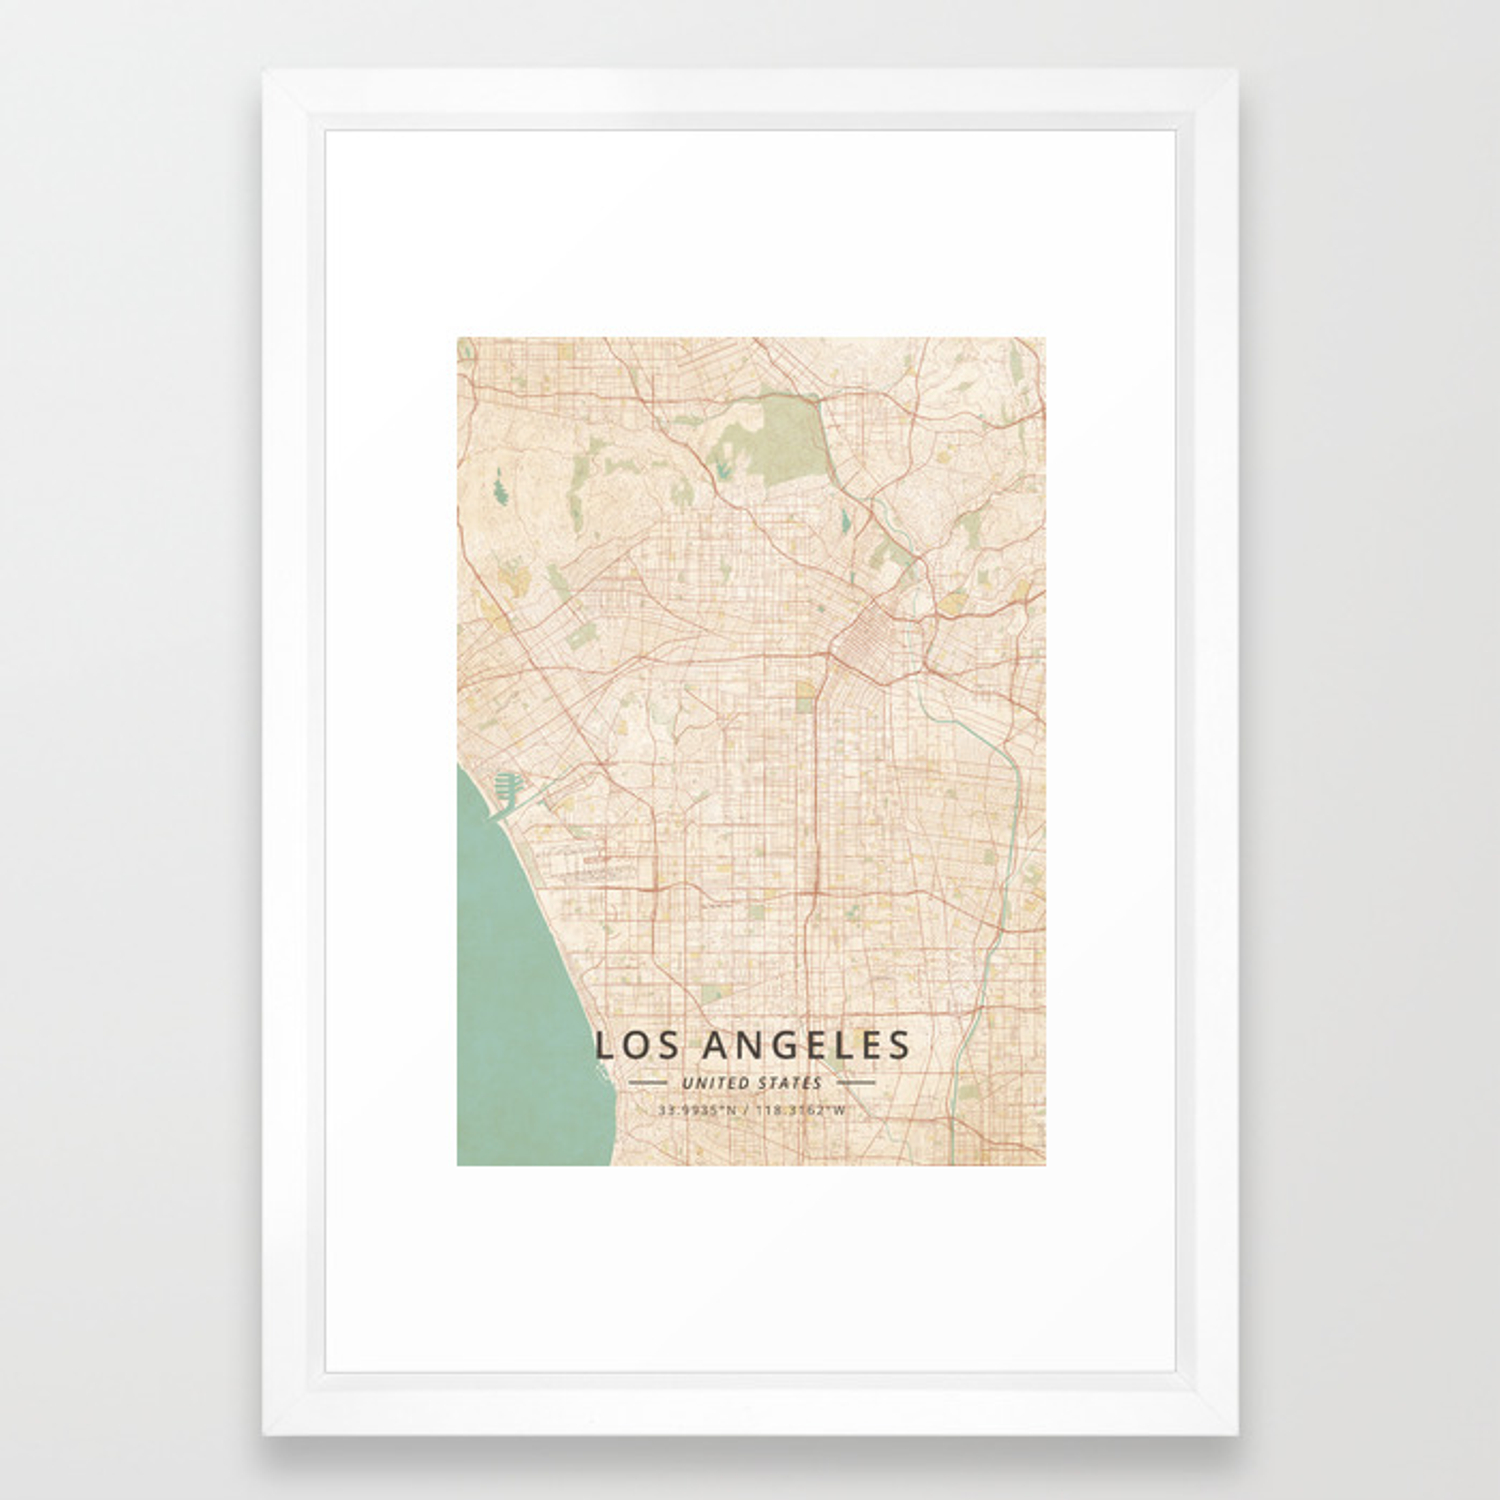 Los Angeles, United States - Vintage Map Framed Art Print by ... on